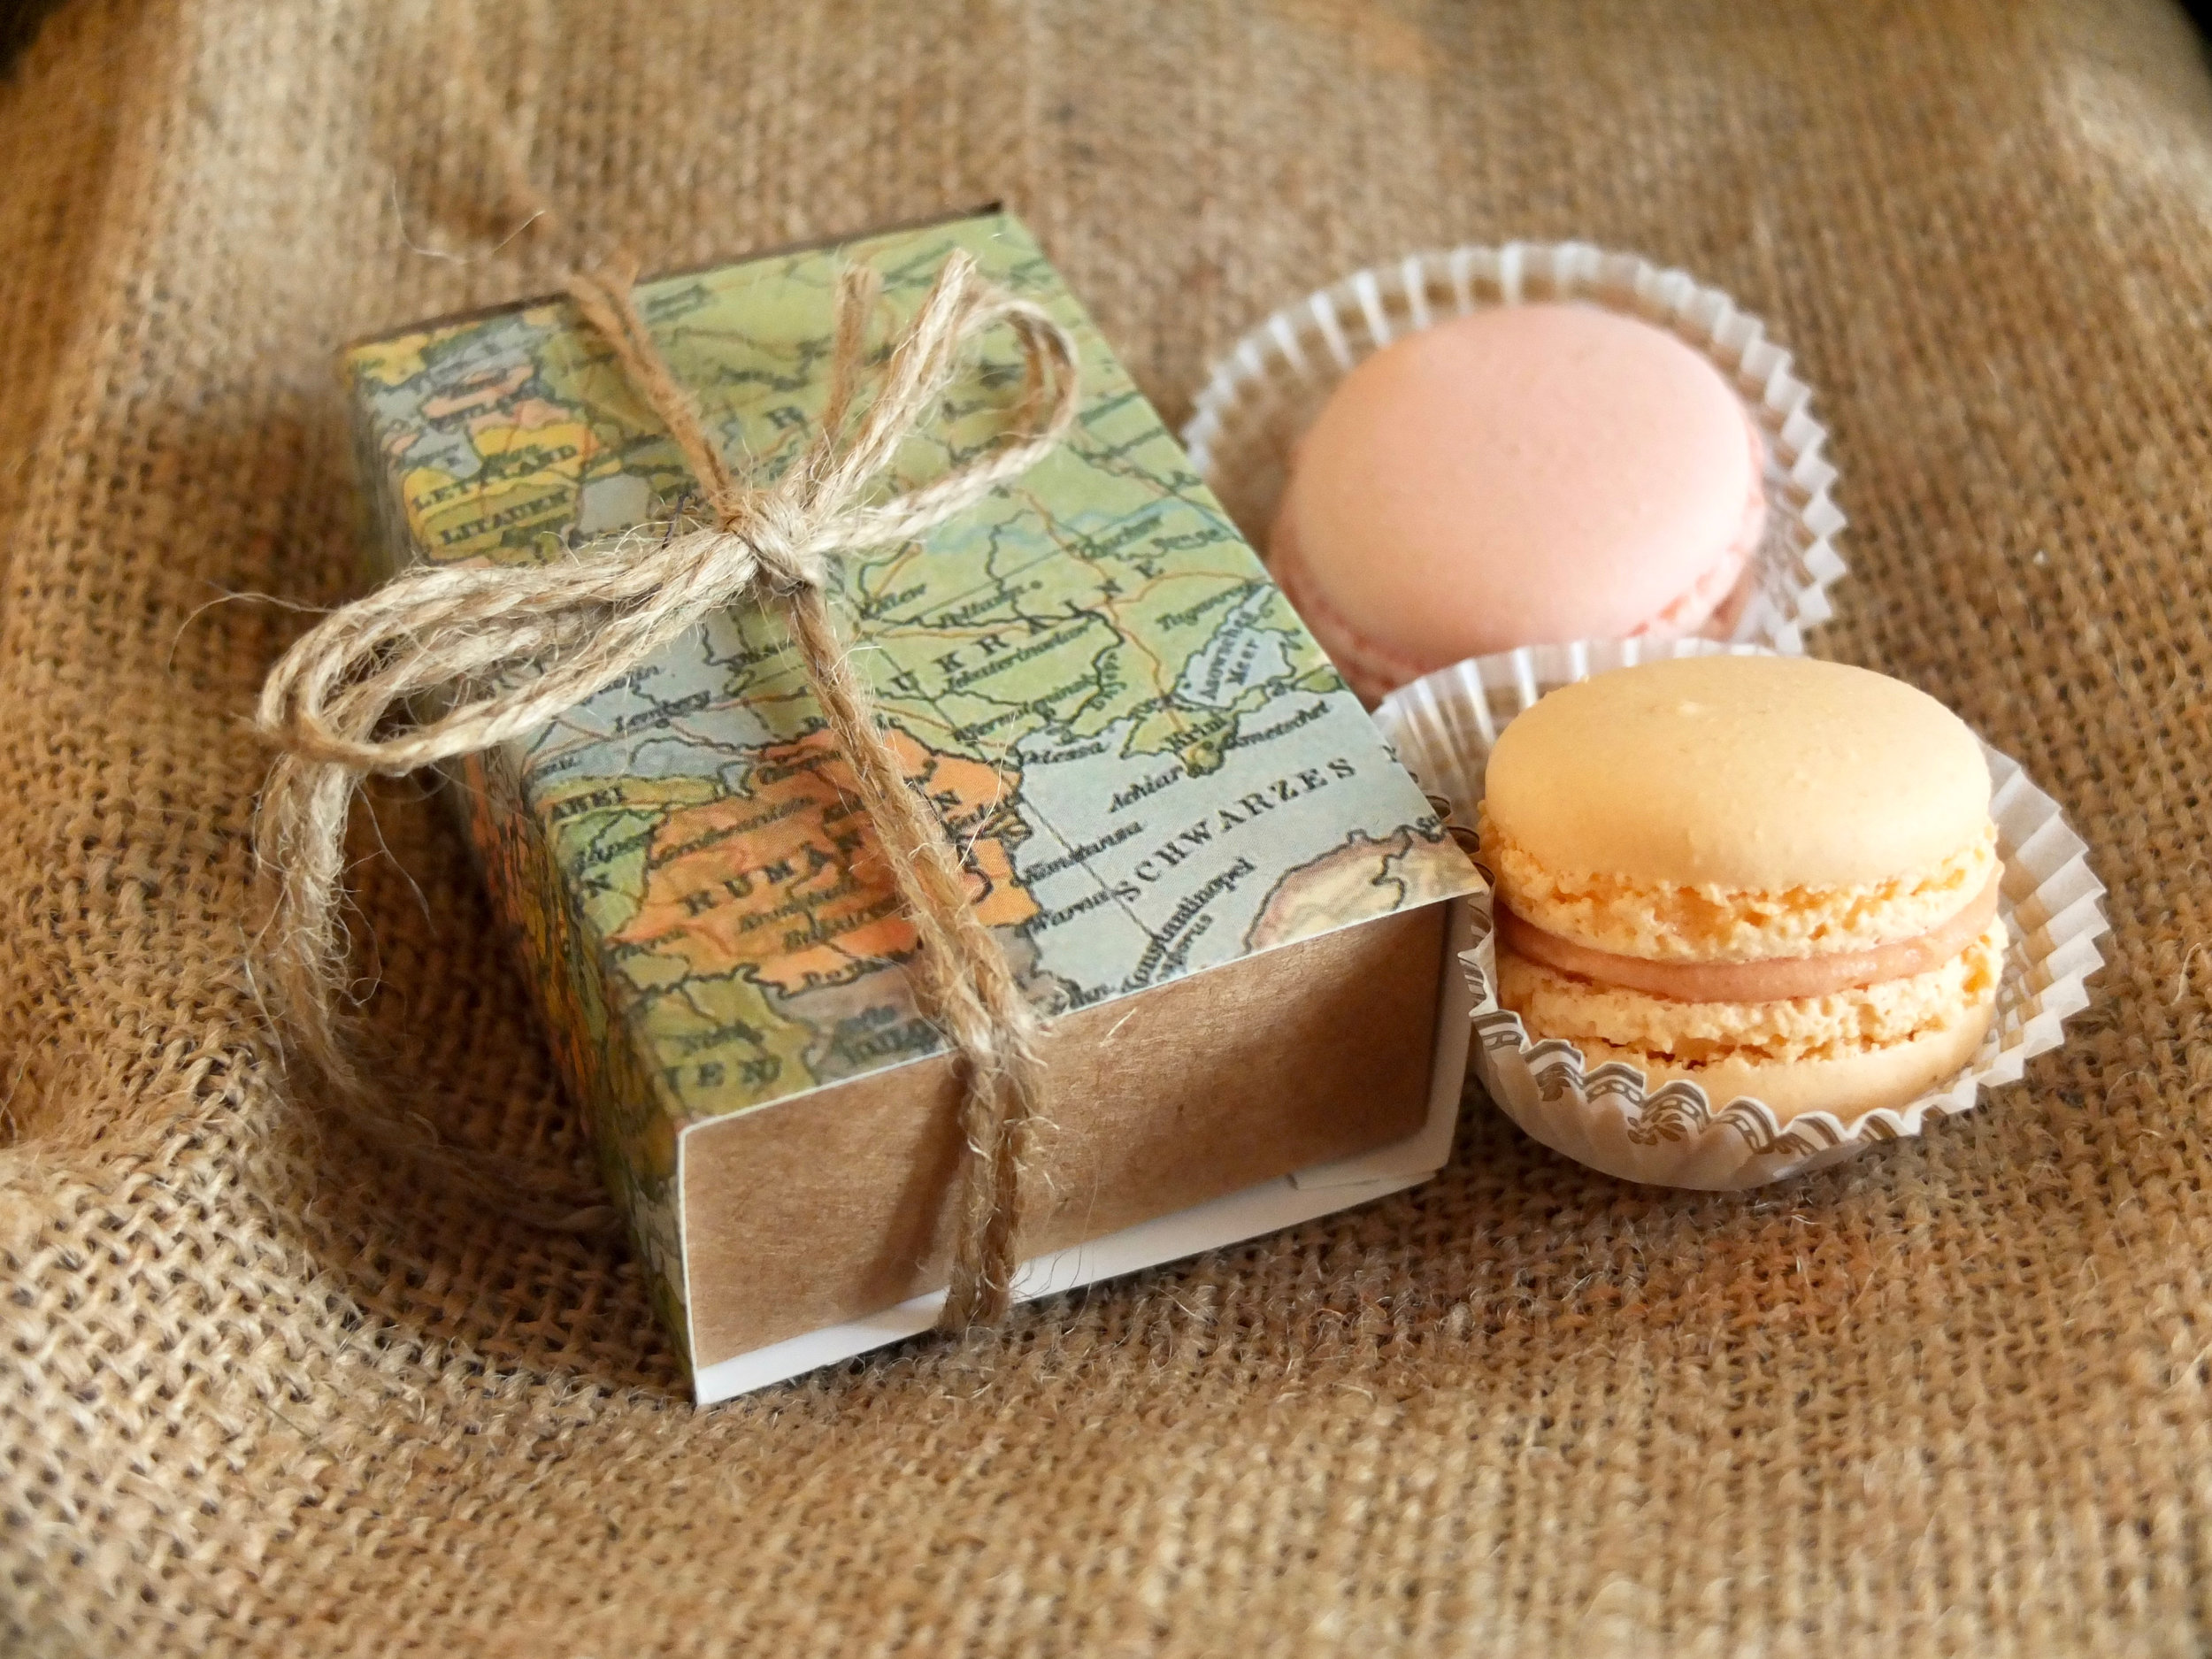 Thierry Isambert's Macarons - Tasty Party Favors For A Boho Baby Shower